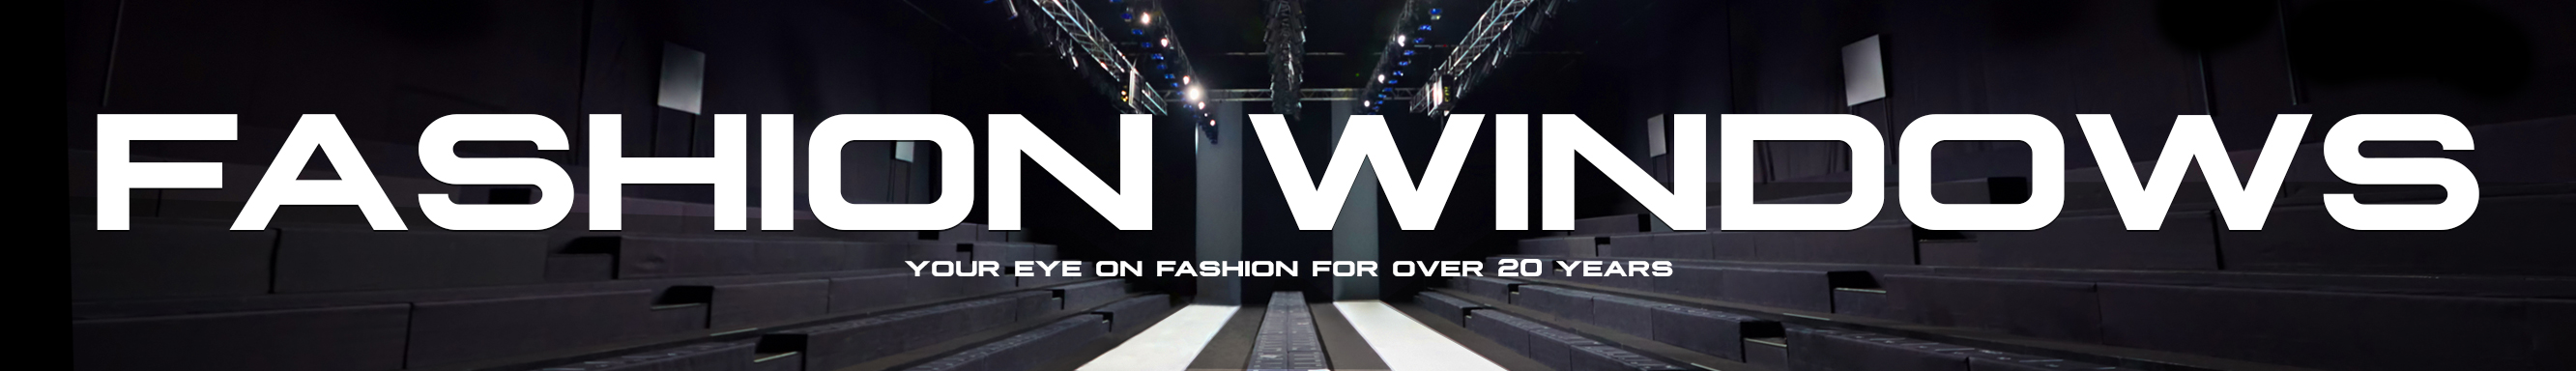 FashionWindows